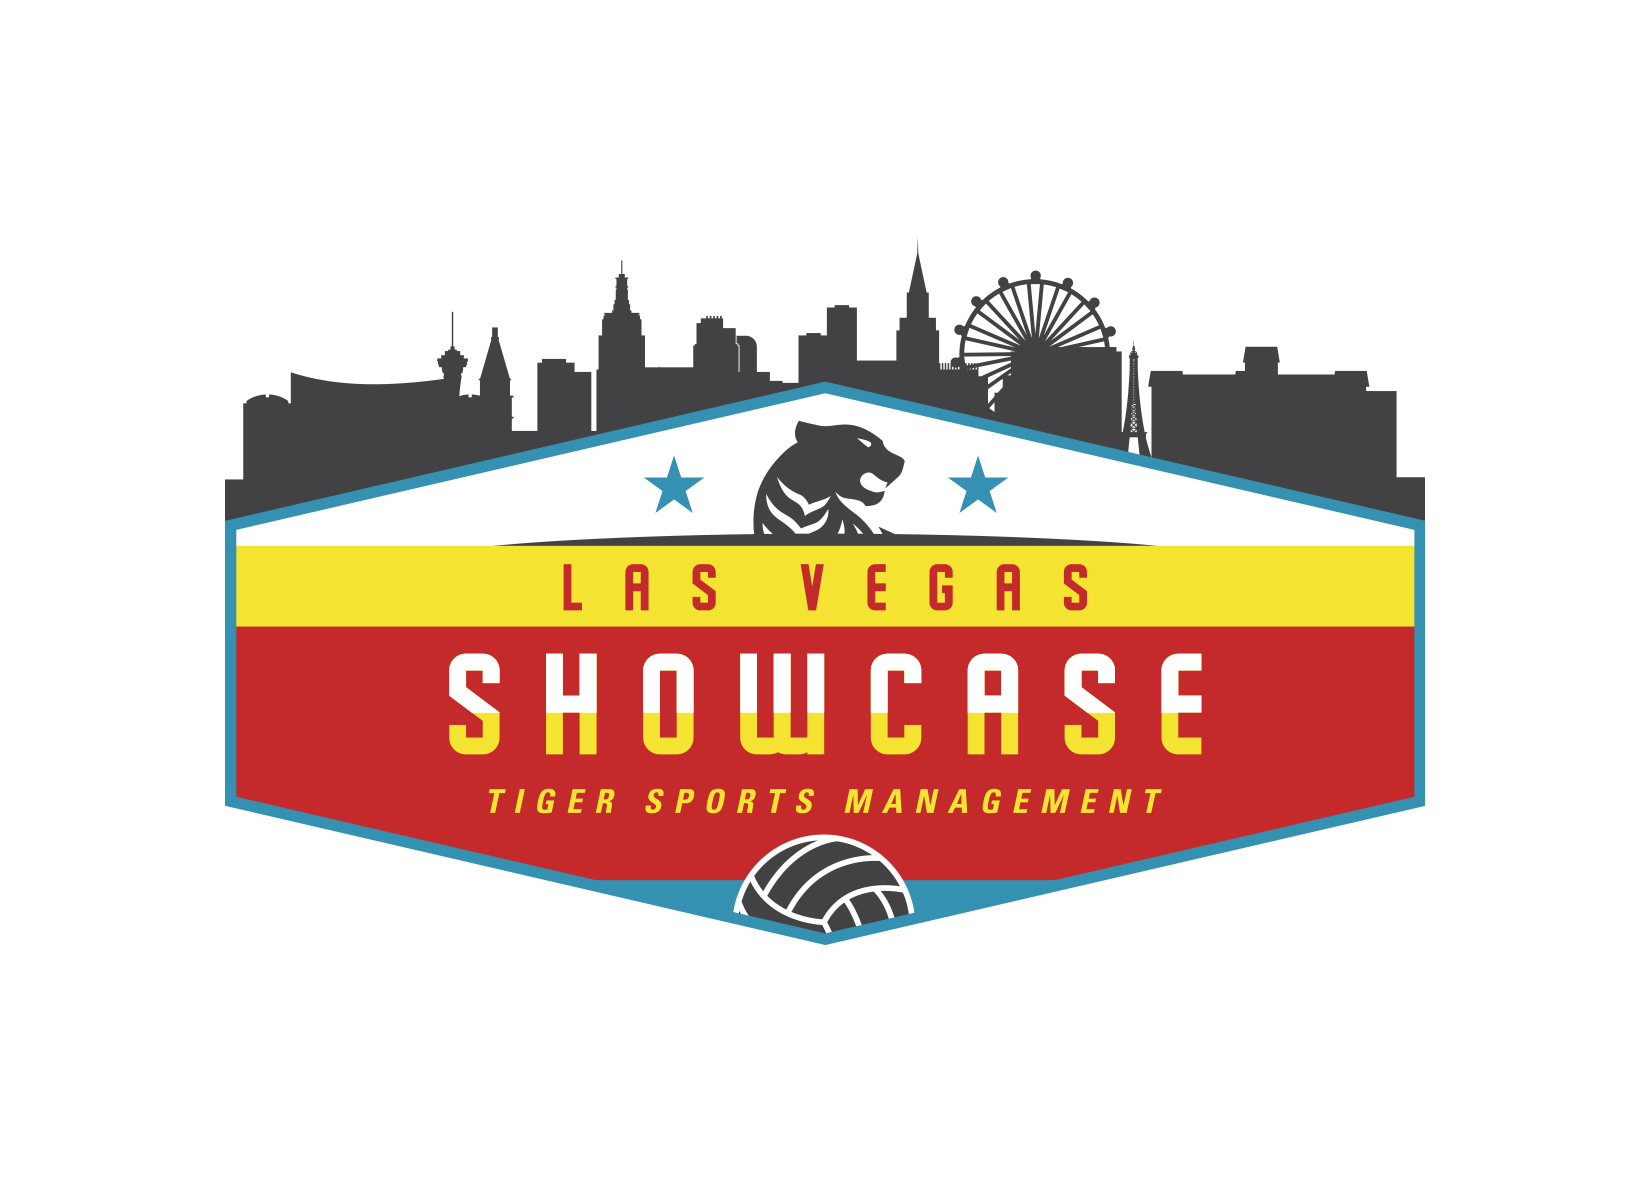 custom-soccer-tournament-crest-design-for-las-vegas-showcase.jpg